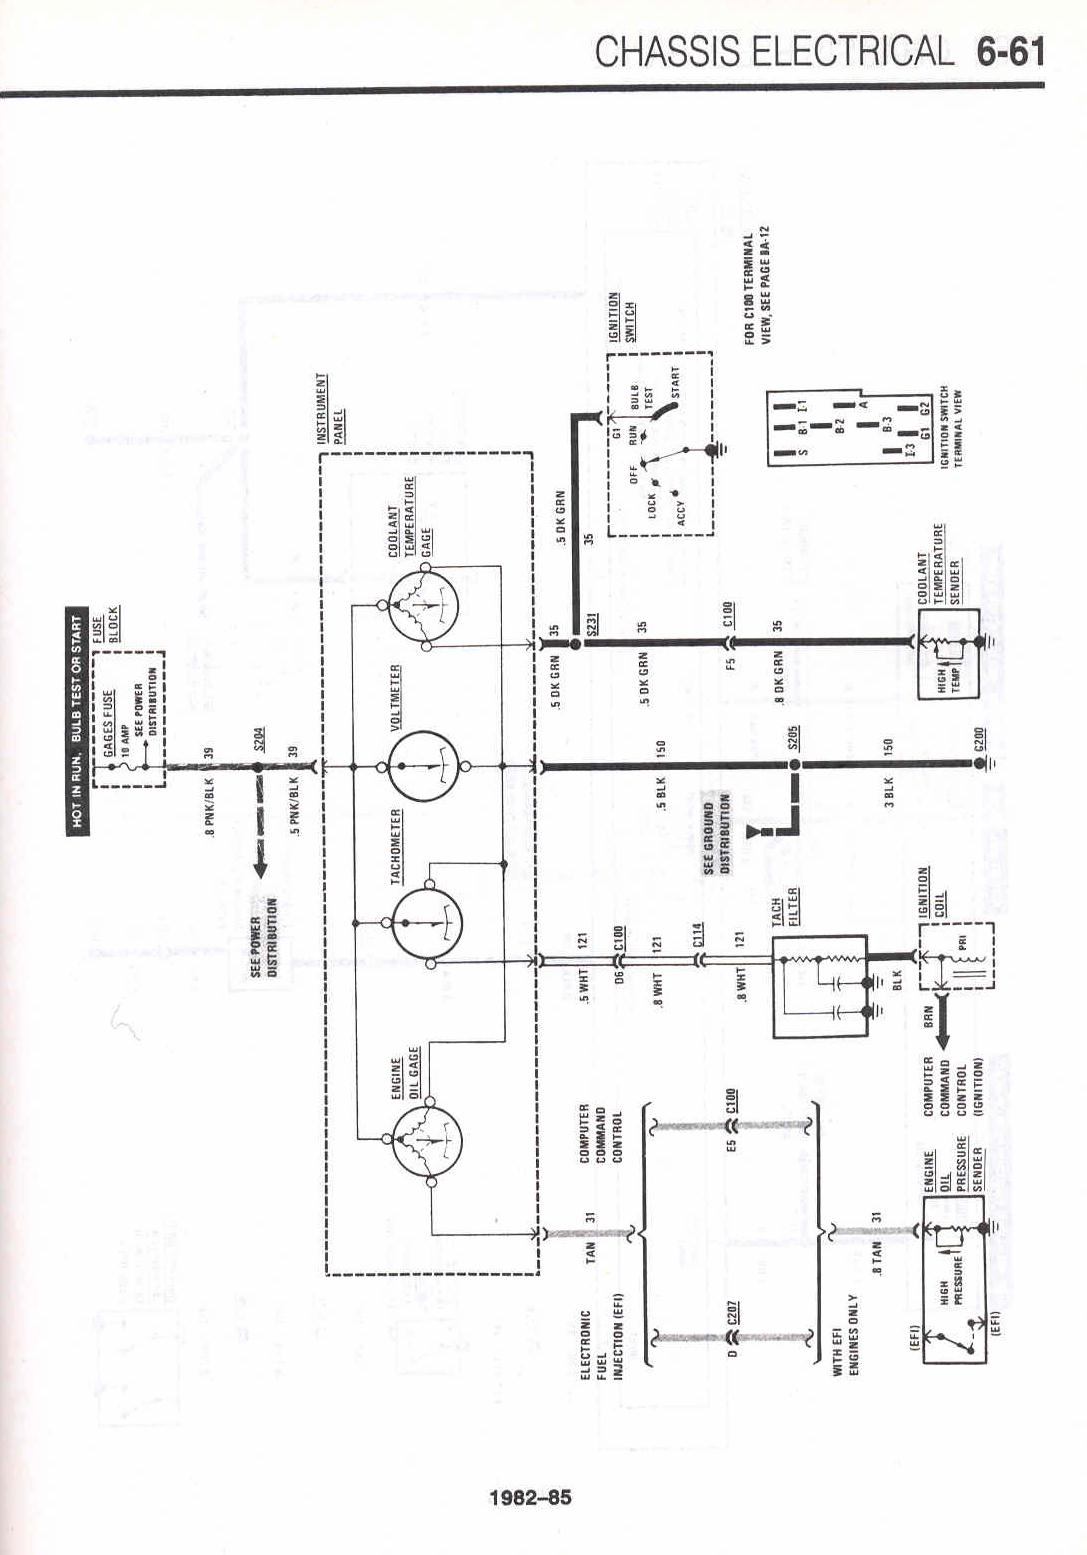 92 Caprice Wiper Switch Wiring Diagram Schematics Diagrams 1960 Vw Beetle 2006 Chevy Stereo Free Camaro Console Get Image About Jeep Motor Universal